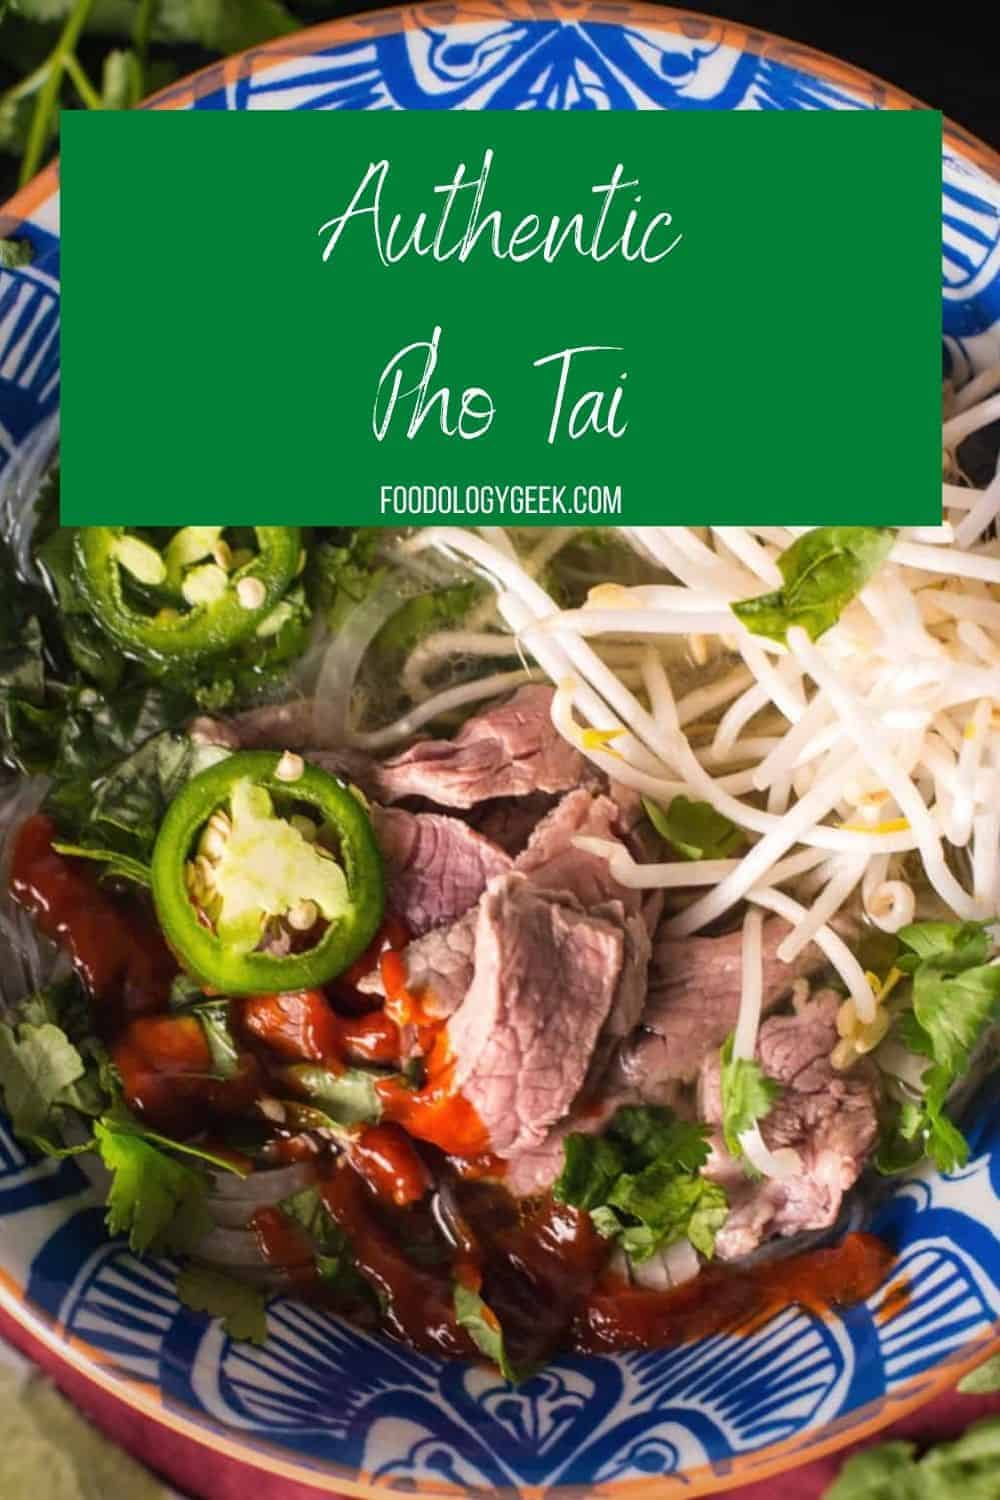 Make this traditional Vietnamese noodle soup at home! The spices in the broth are spot on! So Yummy! Phó Tai is comforting and so good for you!